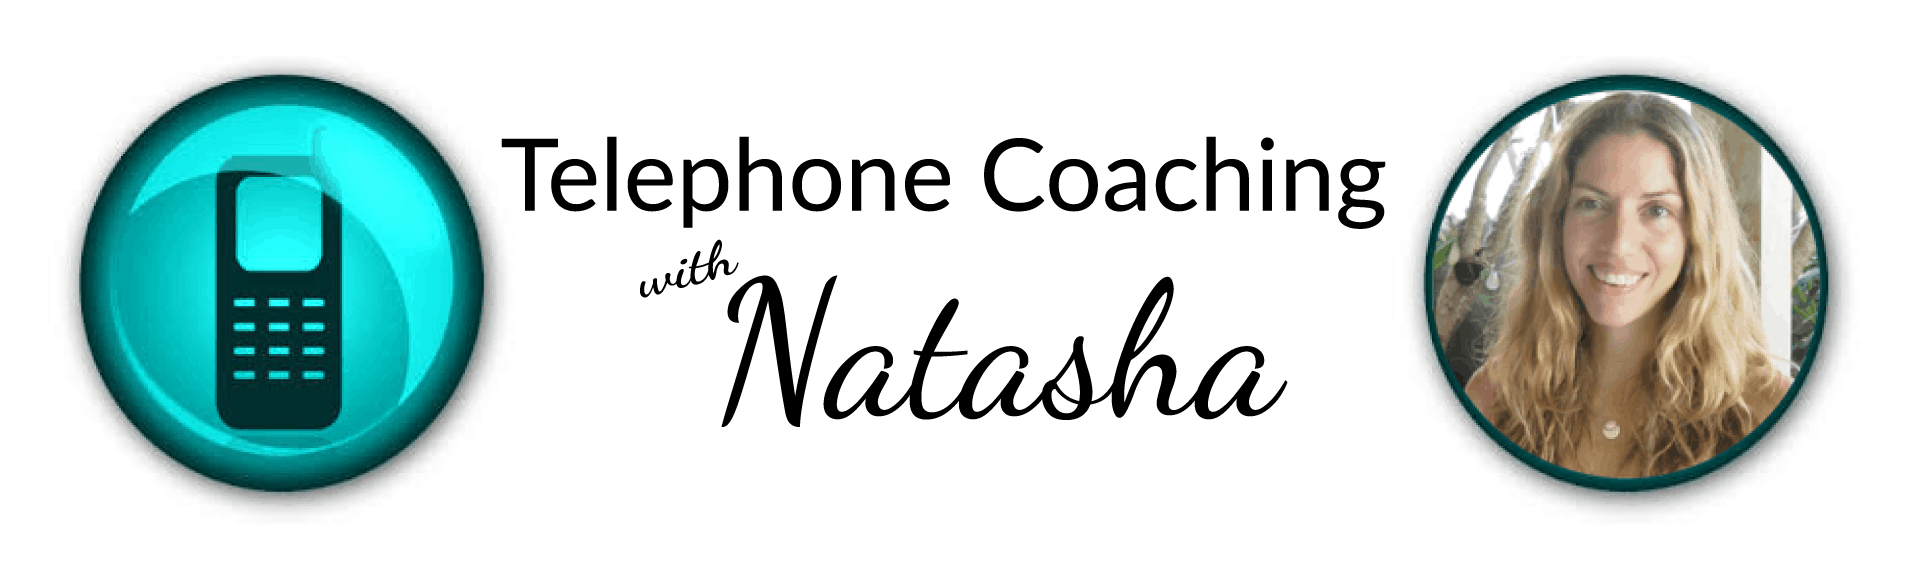 telephone coaching with Natasha St. Michael